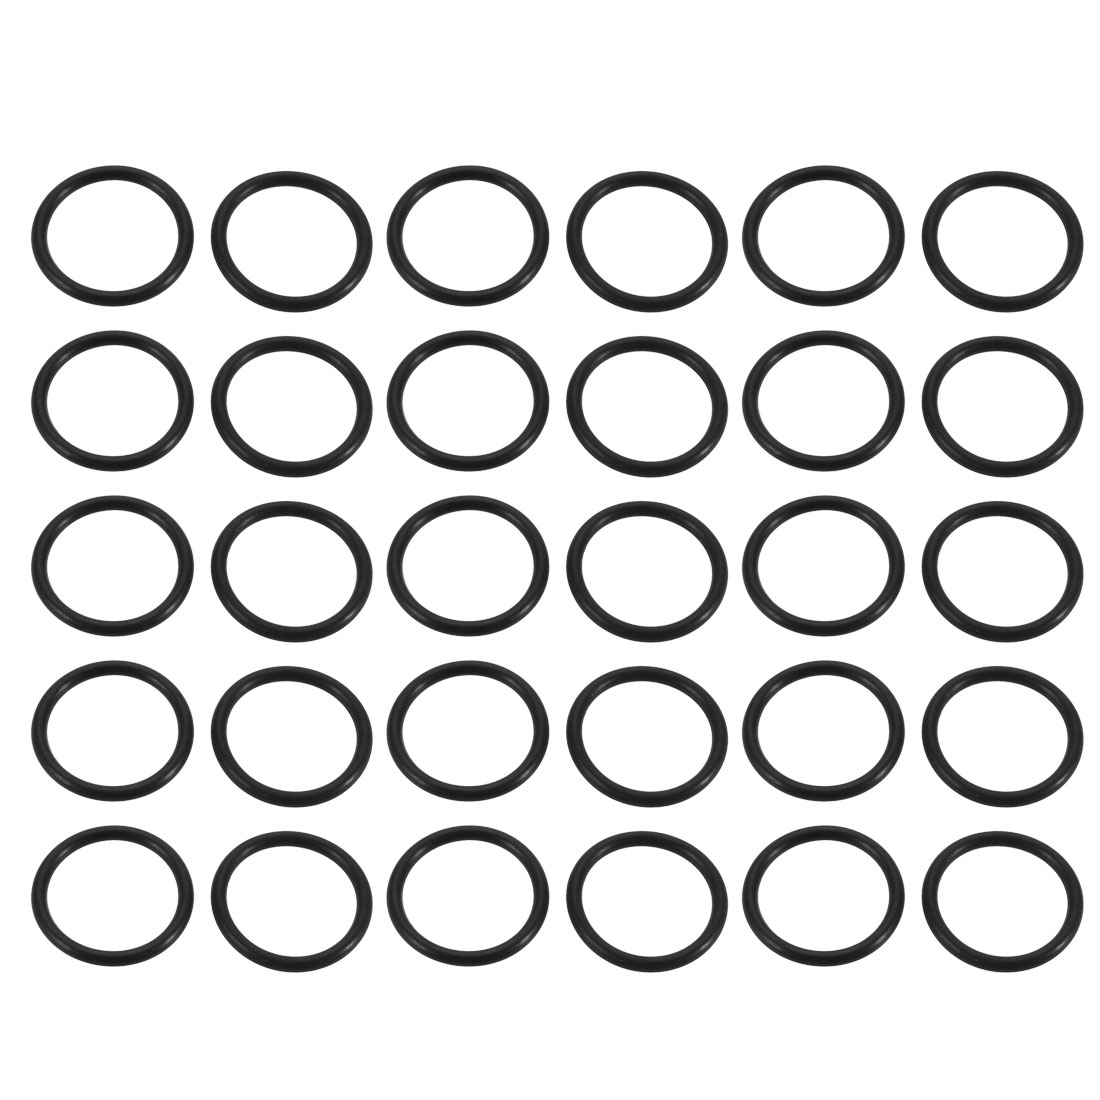 30pcs Black Nitrile Butadiene Rubber NBR O-Ring 16mm Inner Diameter 2mm Wide